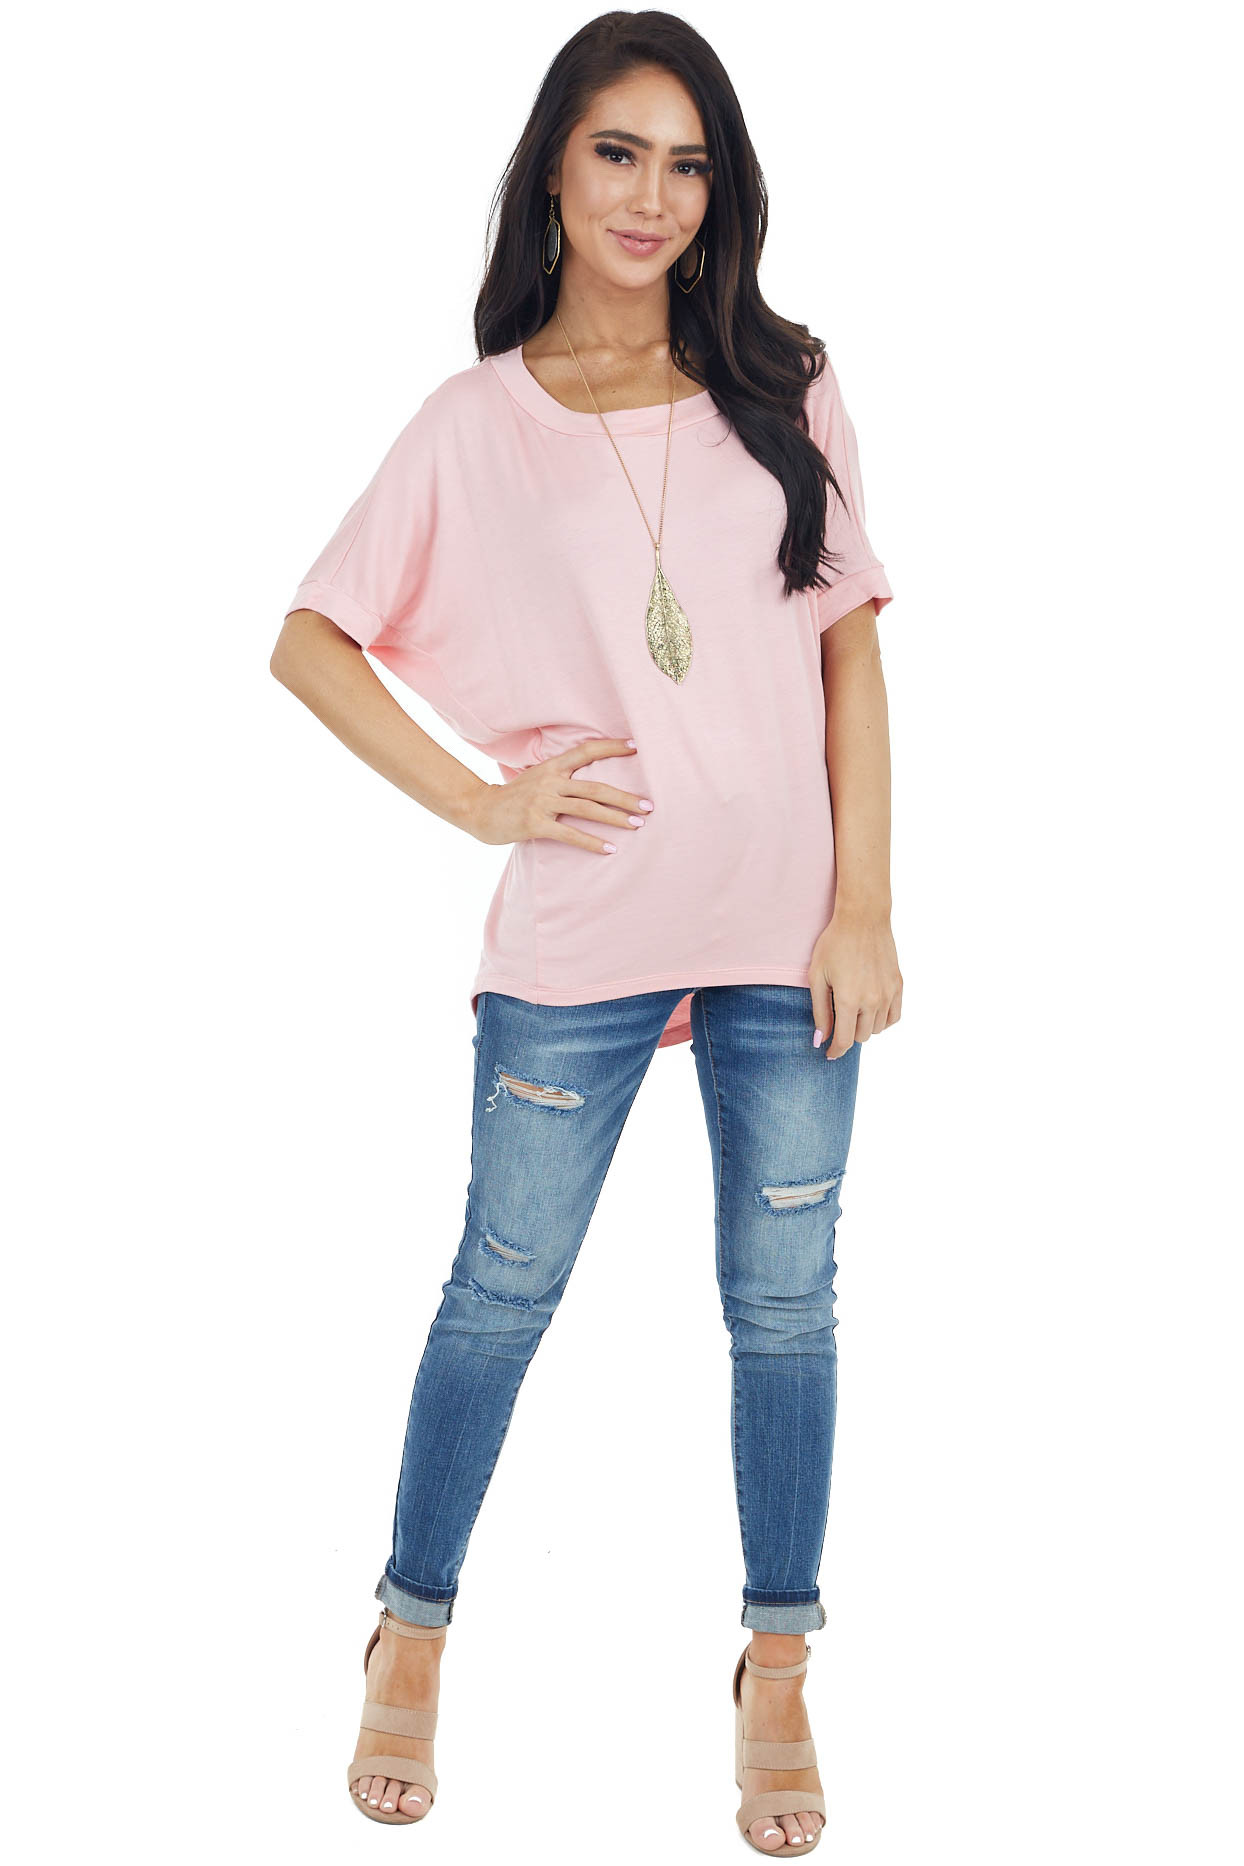 Blush French Terry Knit Top with Short Dolman Sleeves